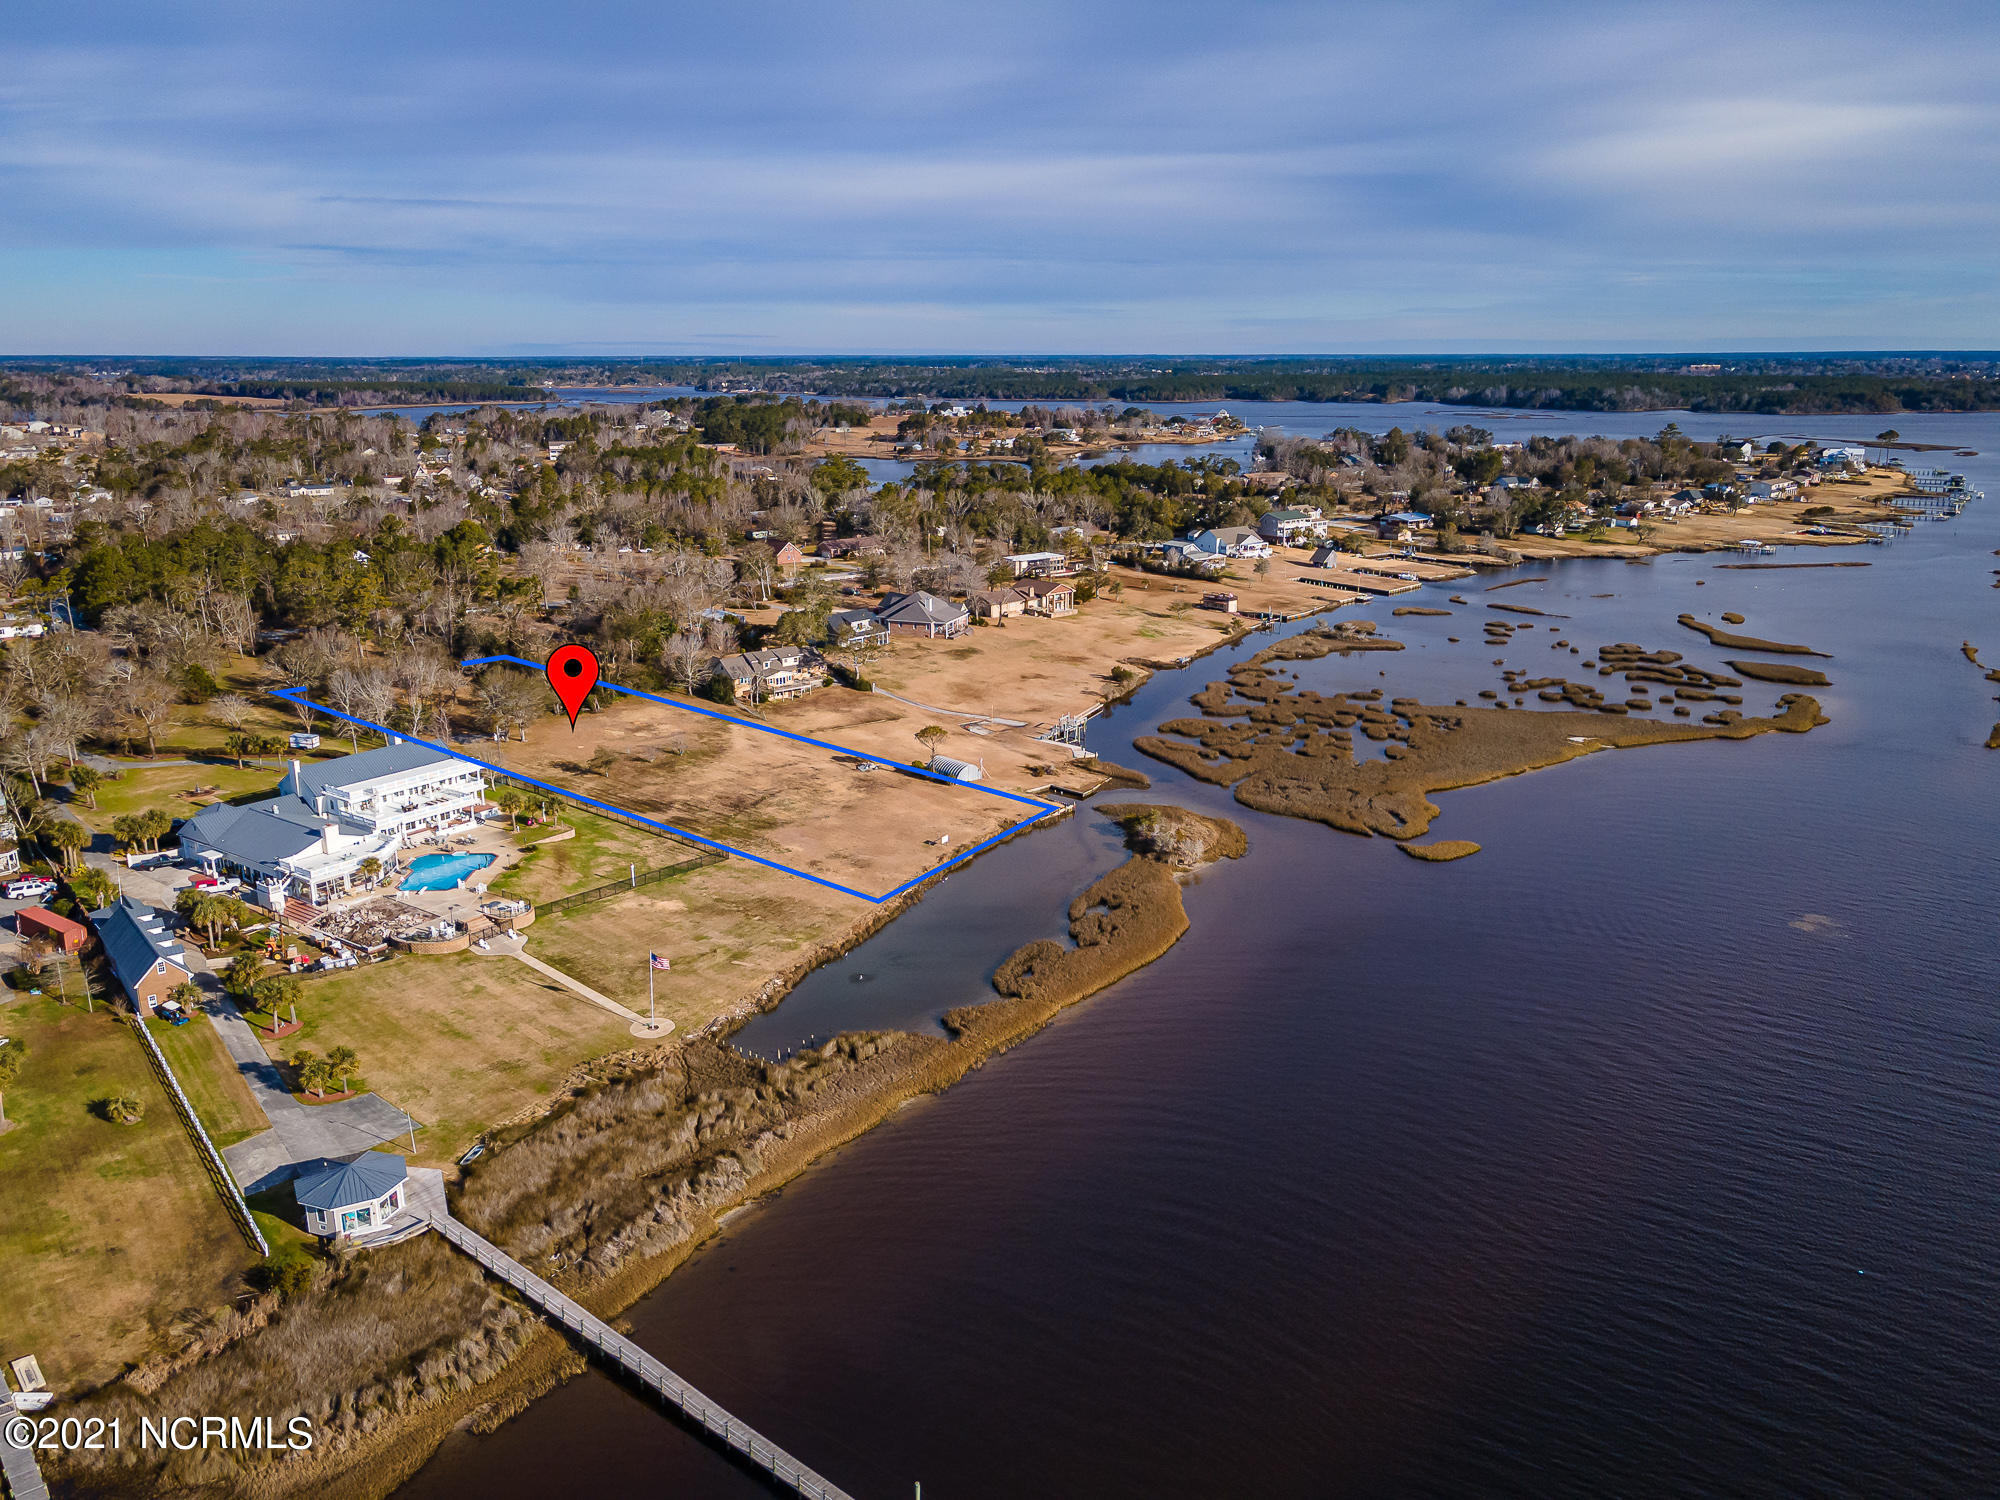 Direct ICWW waterfront property.  This is a rare piece of waterfront with good elevation for a non flood zone build.  The property sits South of Swansboro near the Cow Channel cut to Hammocks Beach State Park.  The existing 2.42 acre lot is in the process of subdivision into 2 lots and this listing is for the East lot. (The one to the left facing the water). Over 1 acre!  Subdivision docs and  septic analysis are being obtained.  Survey shown in the Documents is subject to change based on engineering requirements.  Buyer shall verify Final subdivision plat prior to closing .